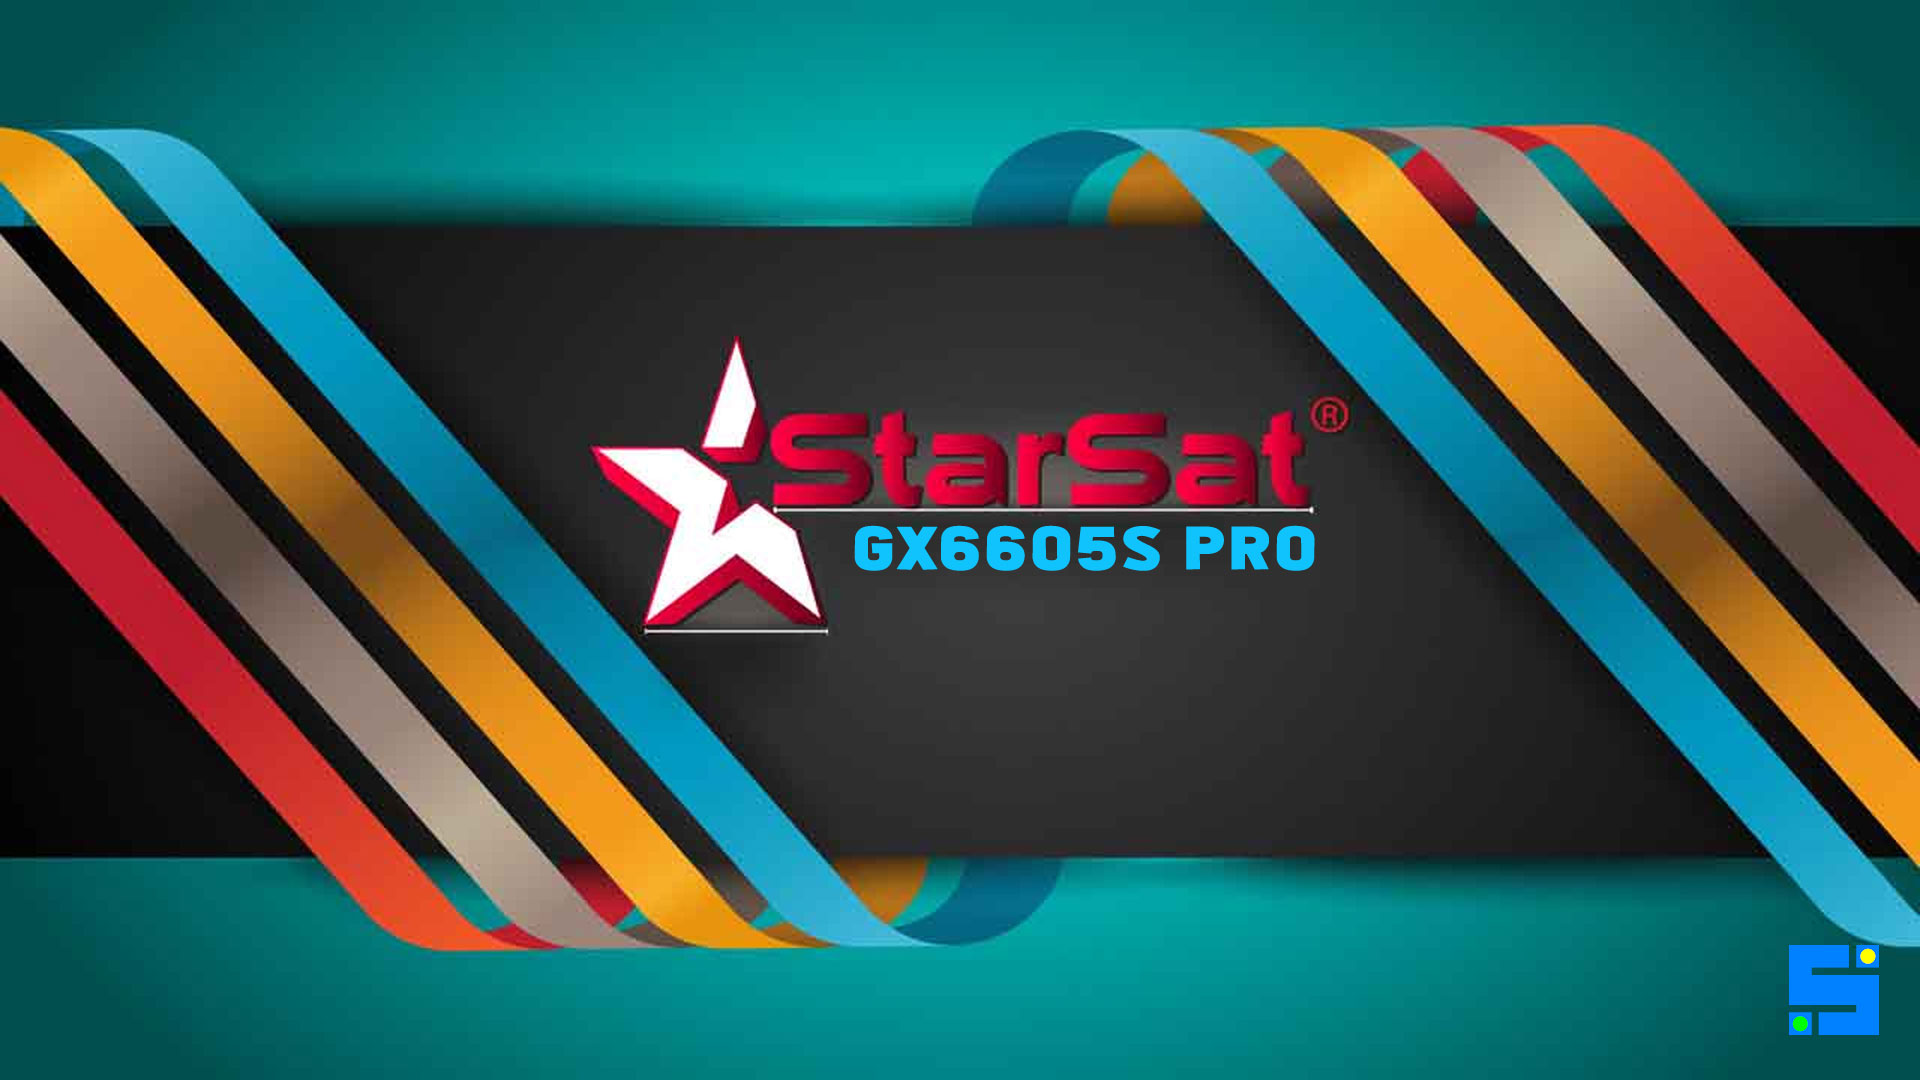 Download GX6605S Software Starsat Pro Update Firmware Receiver